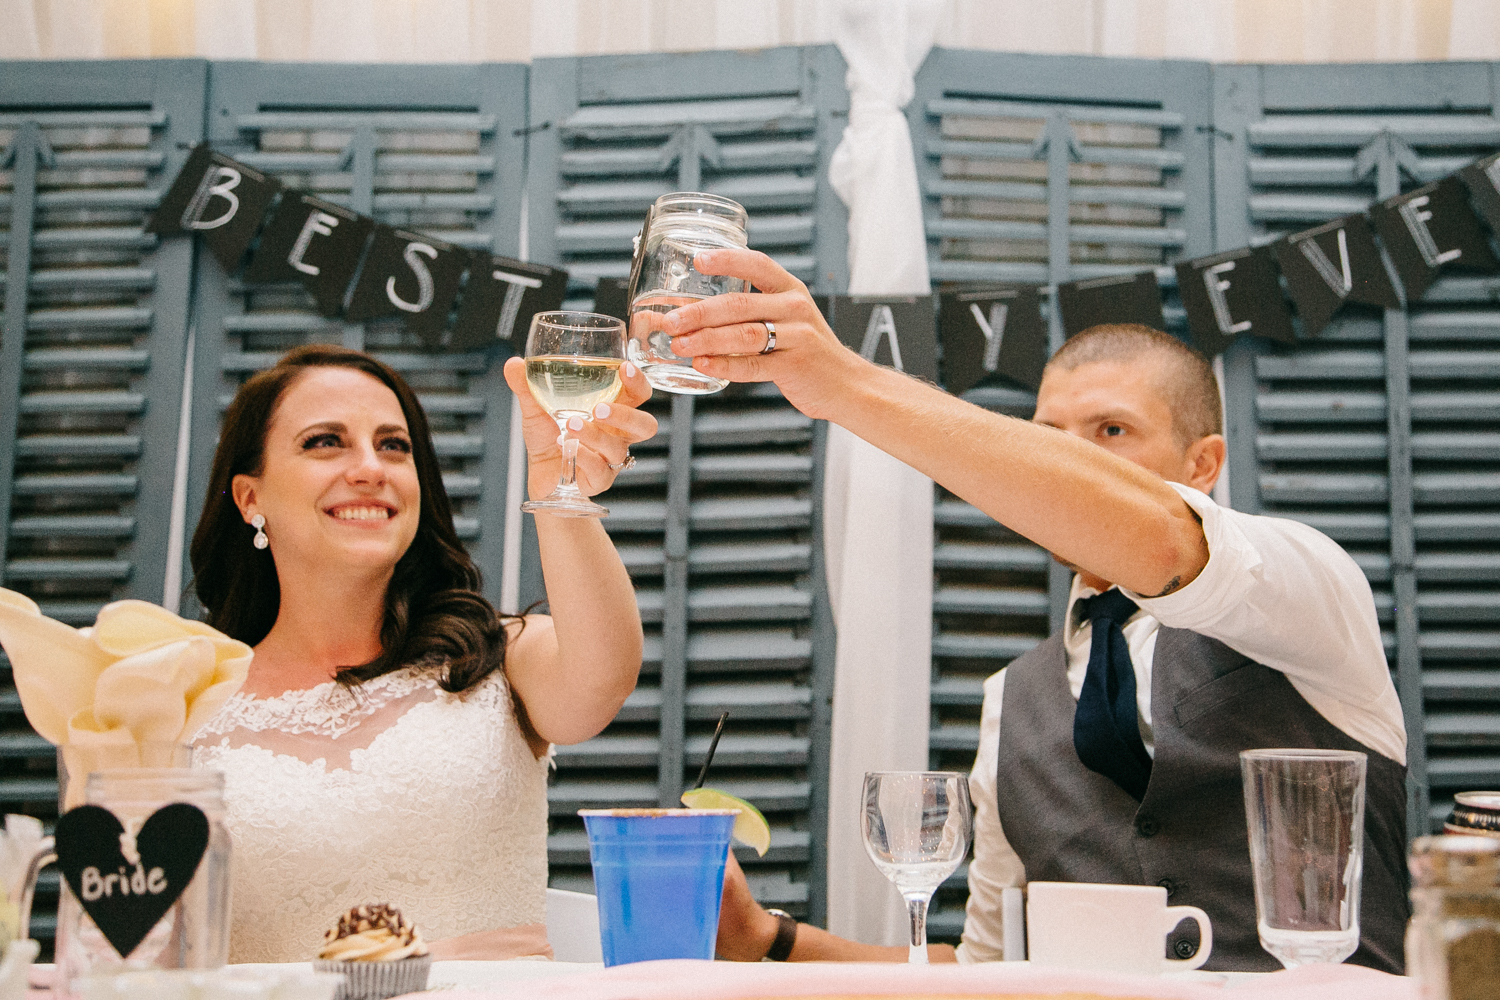 lethbridge-readymade-reception-photography-love-and-be-loved-photographer-ashlin-anne-wedding-picture-image-photo-630.jpg